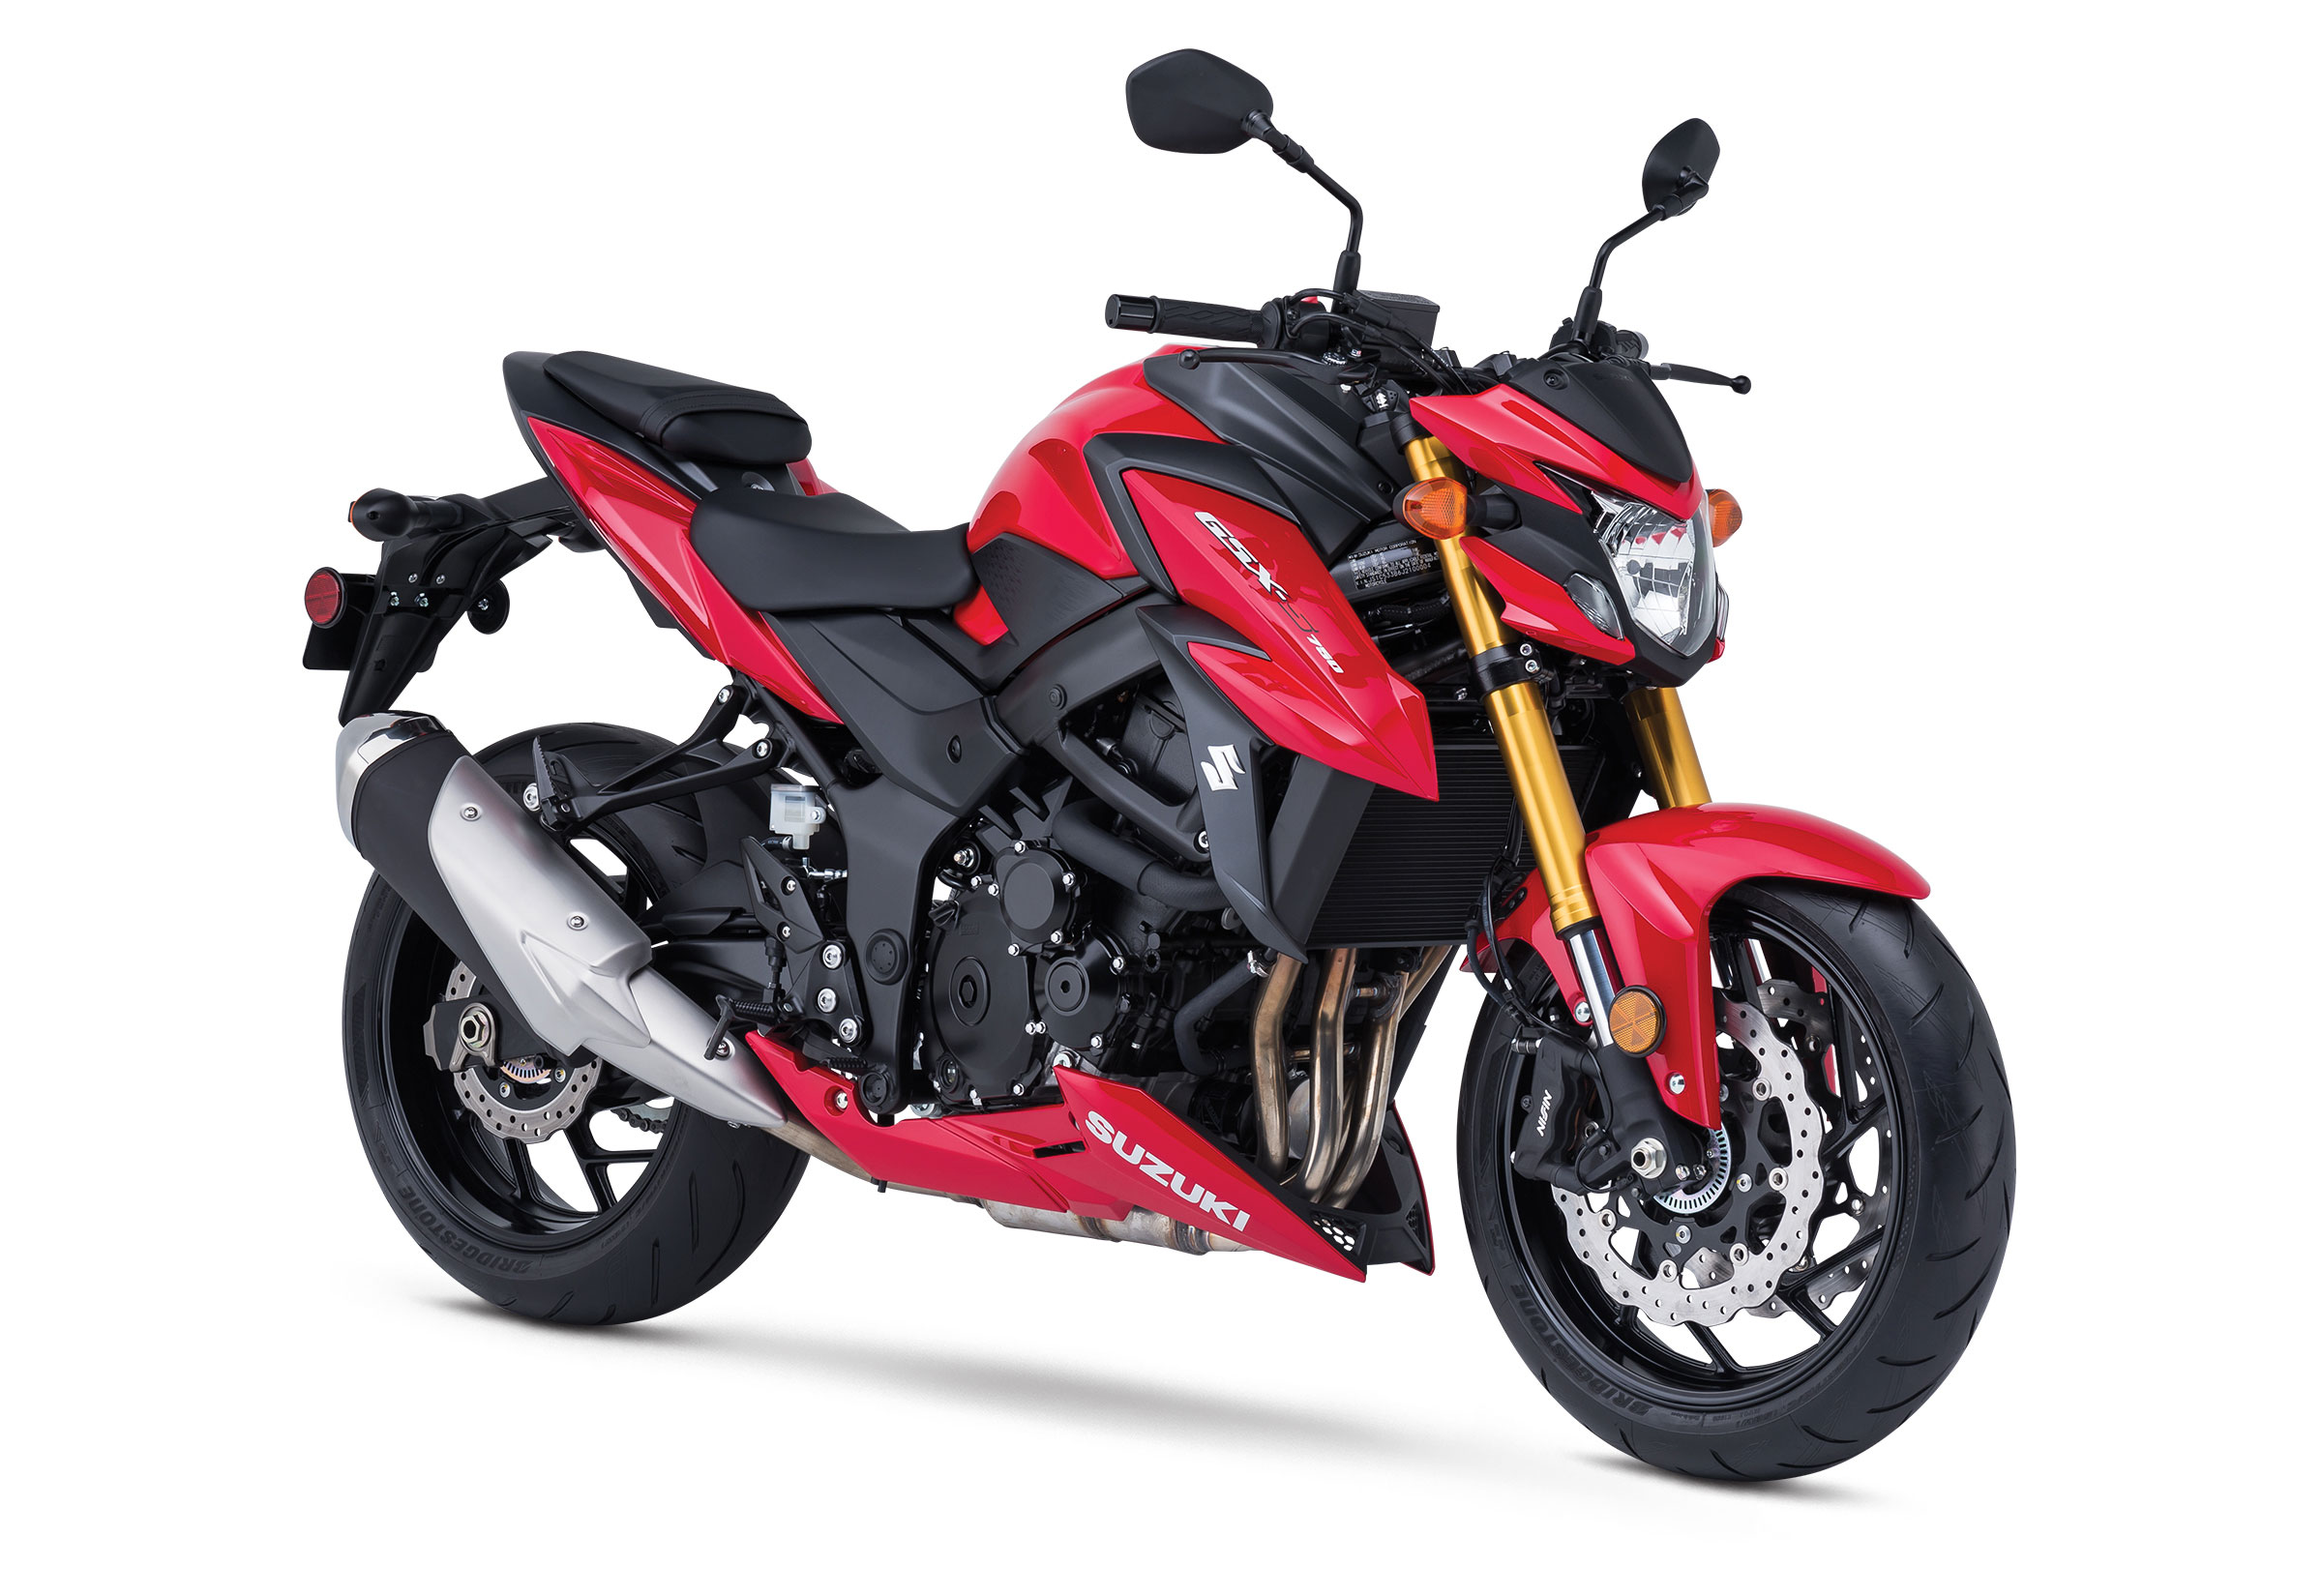 suzuki adds new gsx s750 and gsx r125 abs for 2017 autoevolution. Black Bedroom Furniture Sets. Home Design Ideas